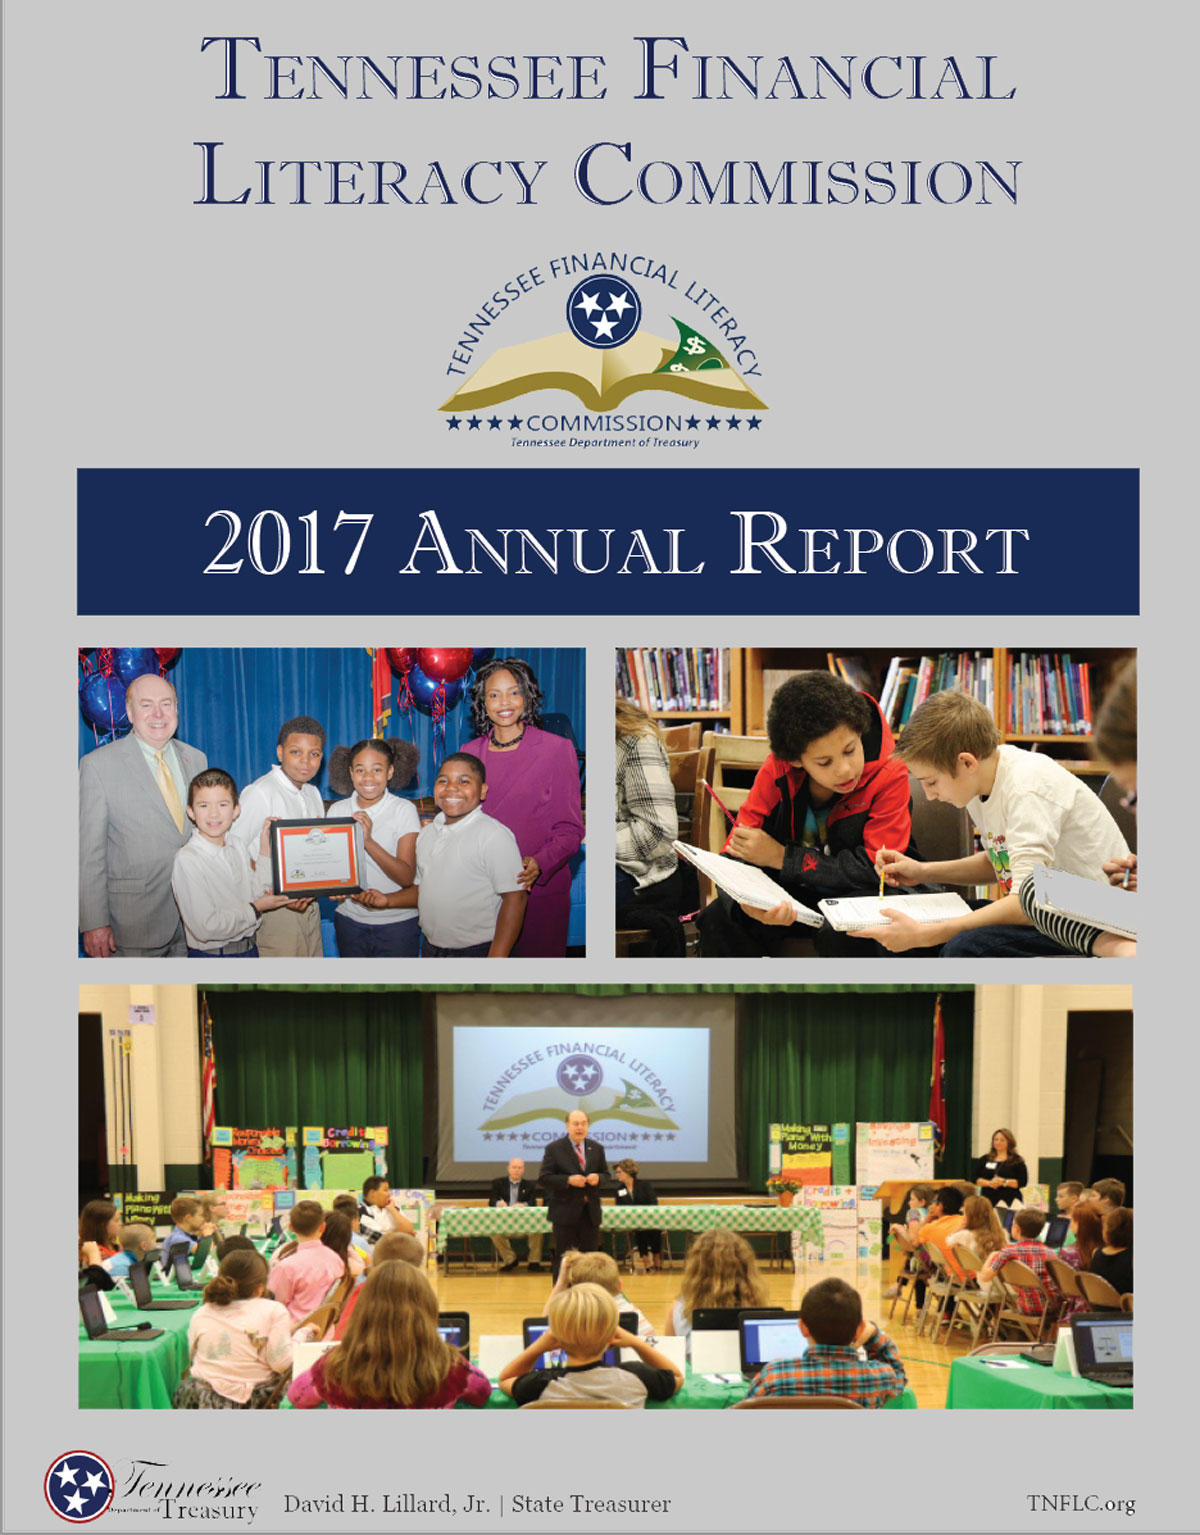 Tennessee Financial Literacy Commission annual report cover